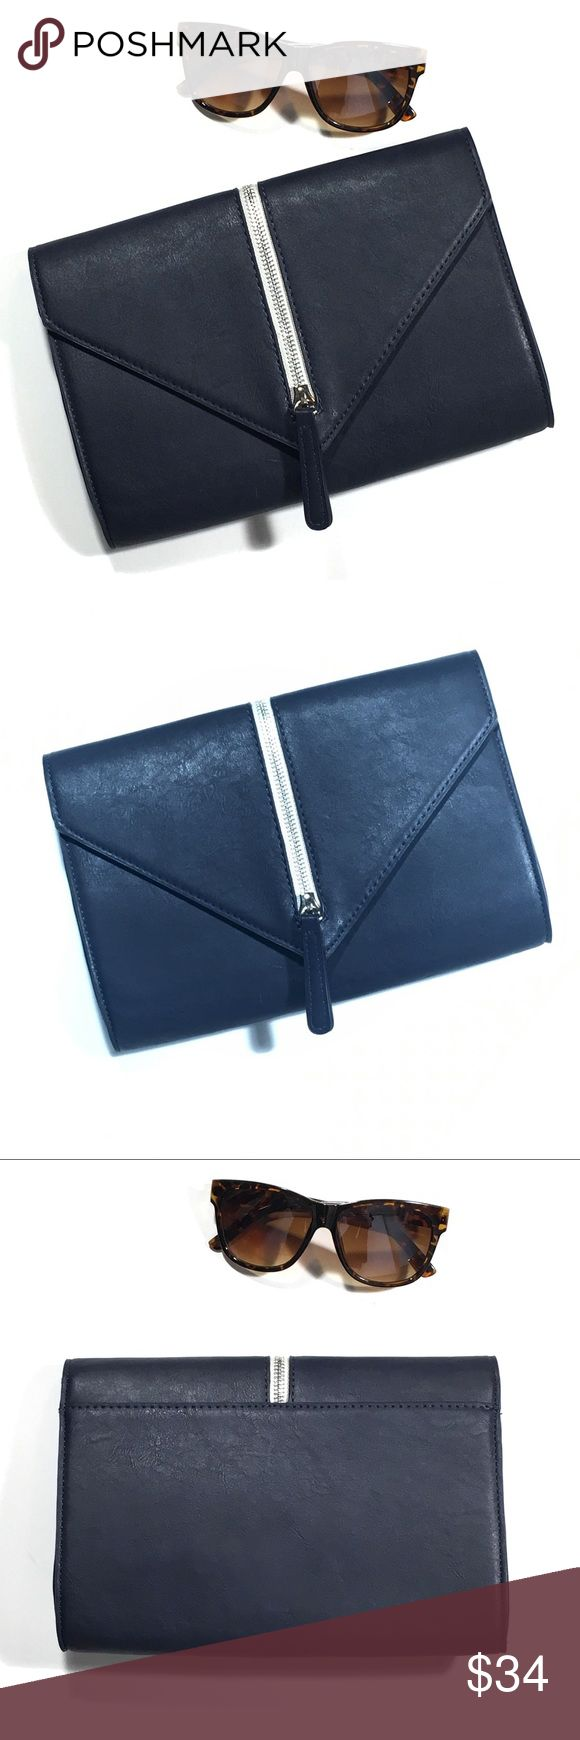 "New Navy Blue Envelope Clutch with Exposed Zipper Awesome navy Clutch has magnetic snap closure and one interior zip pocket. 10"" x 7"" tall. It's a very dark navy blue with silver zipper. Man made materials. It is new with tags and has a minor scratch as seen in 5th pic. Bags Clutches & Wristlets"